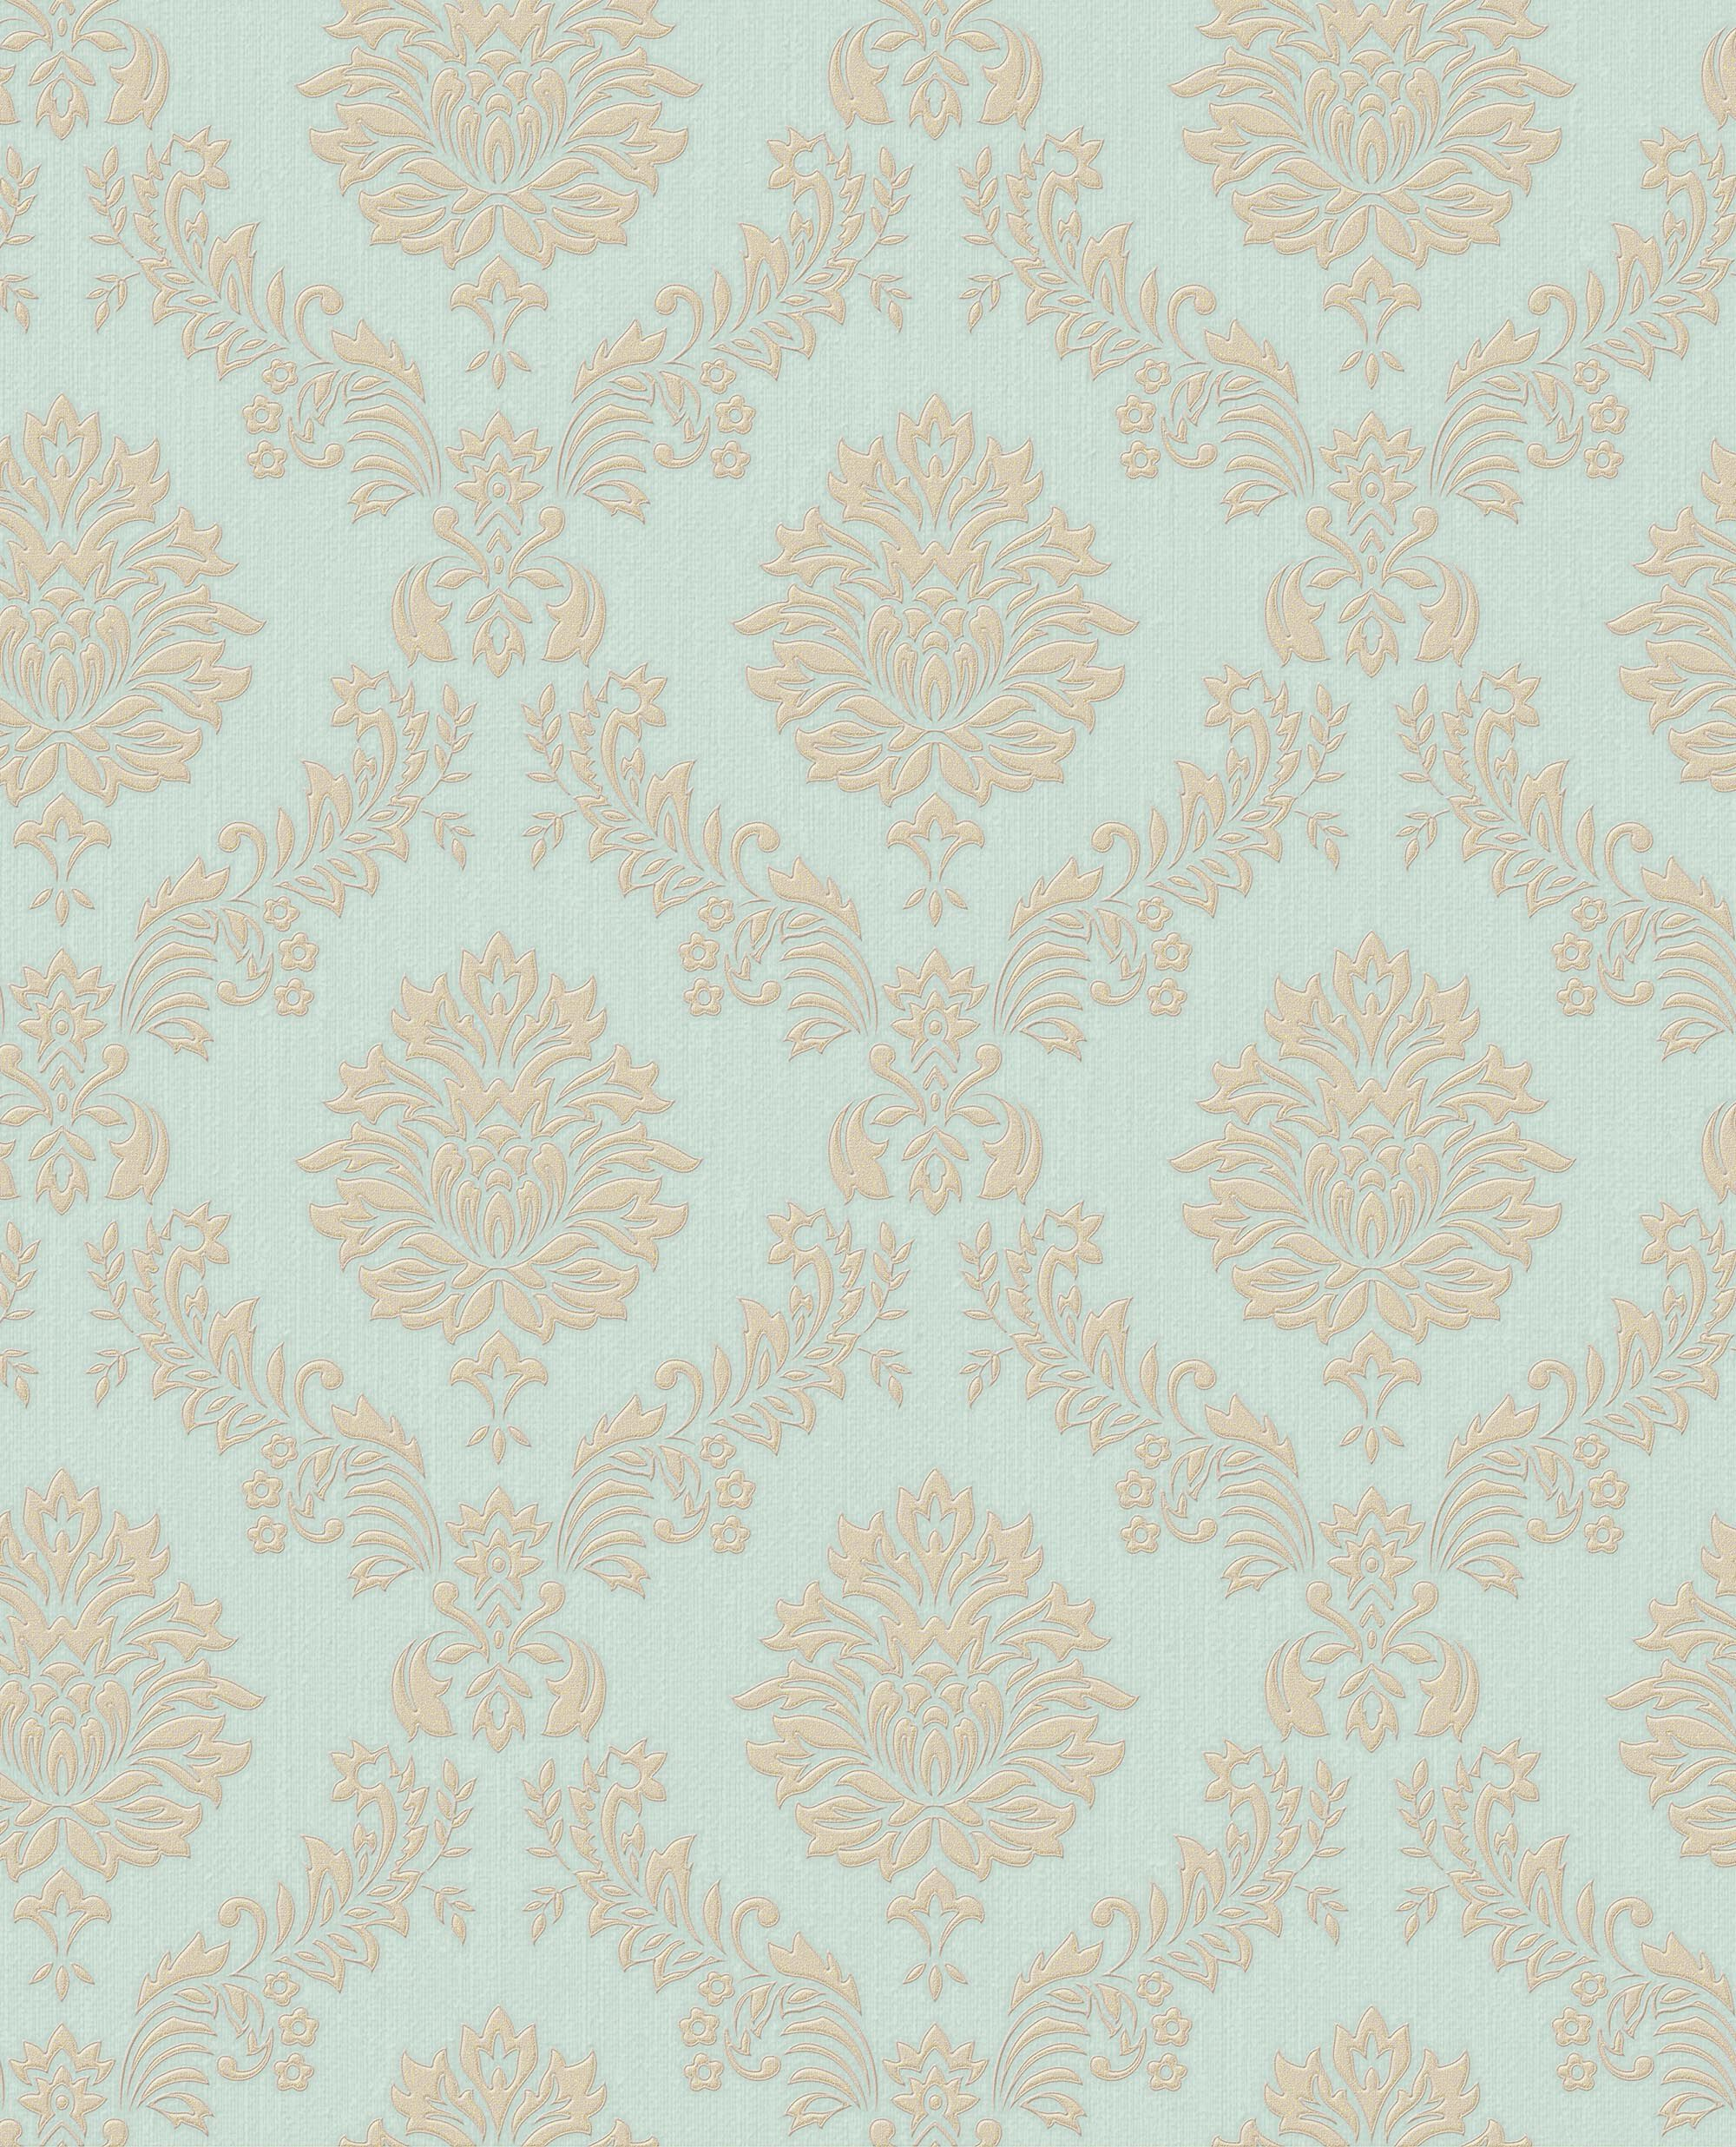 Jacquard Gold and Teal Wallpaper - GrahamBrownUS